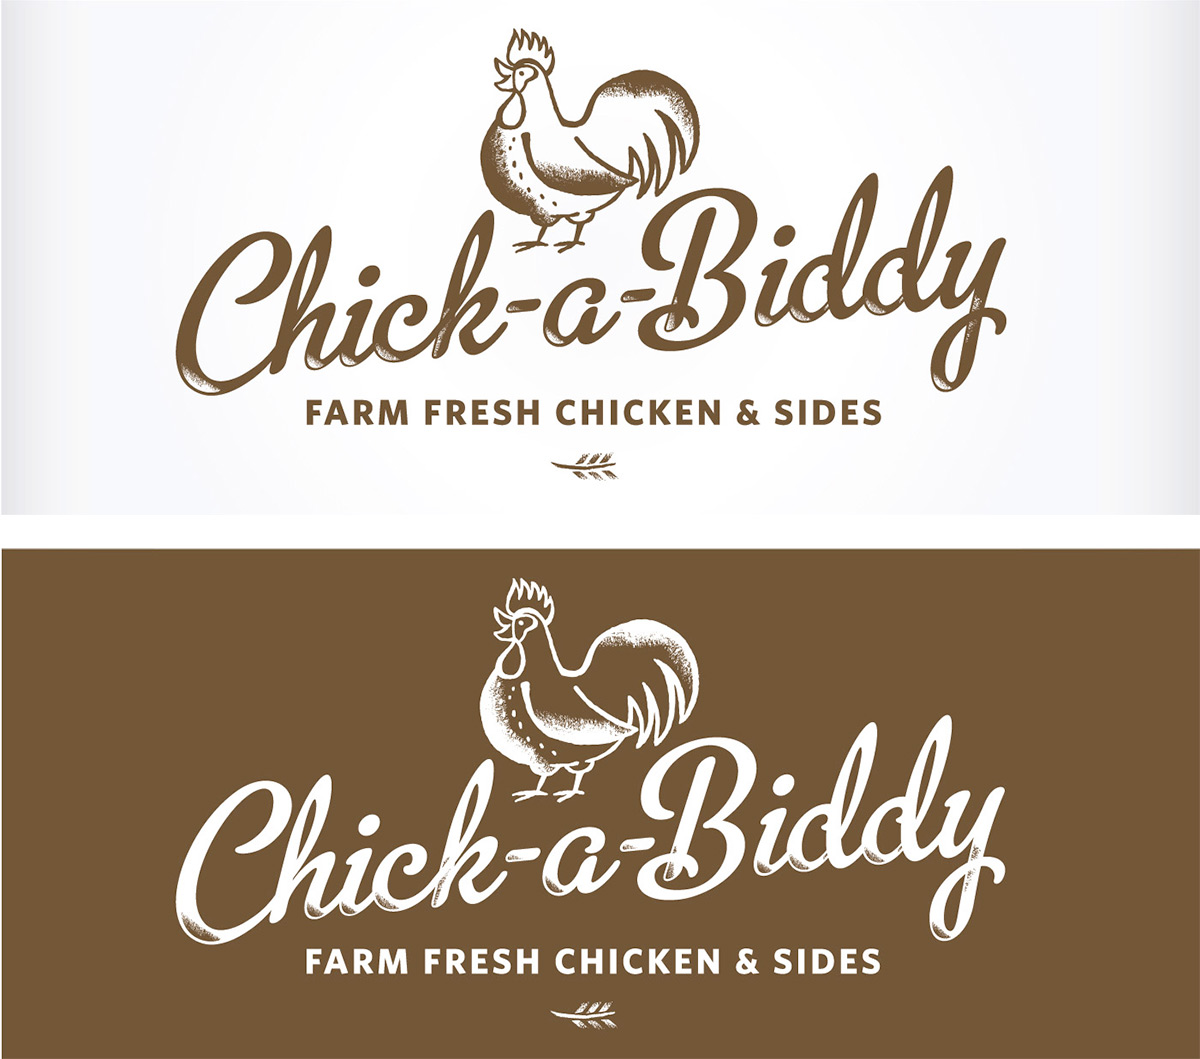 CHICK-A-BIDDY. Designed by Tad Carpenter / www.enviromeant.com